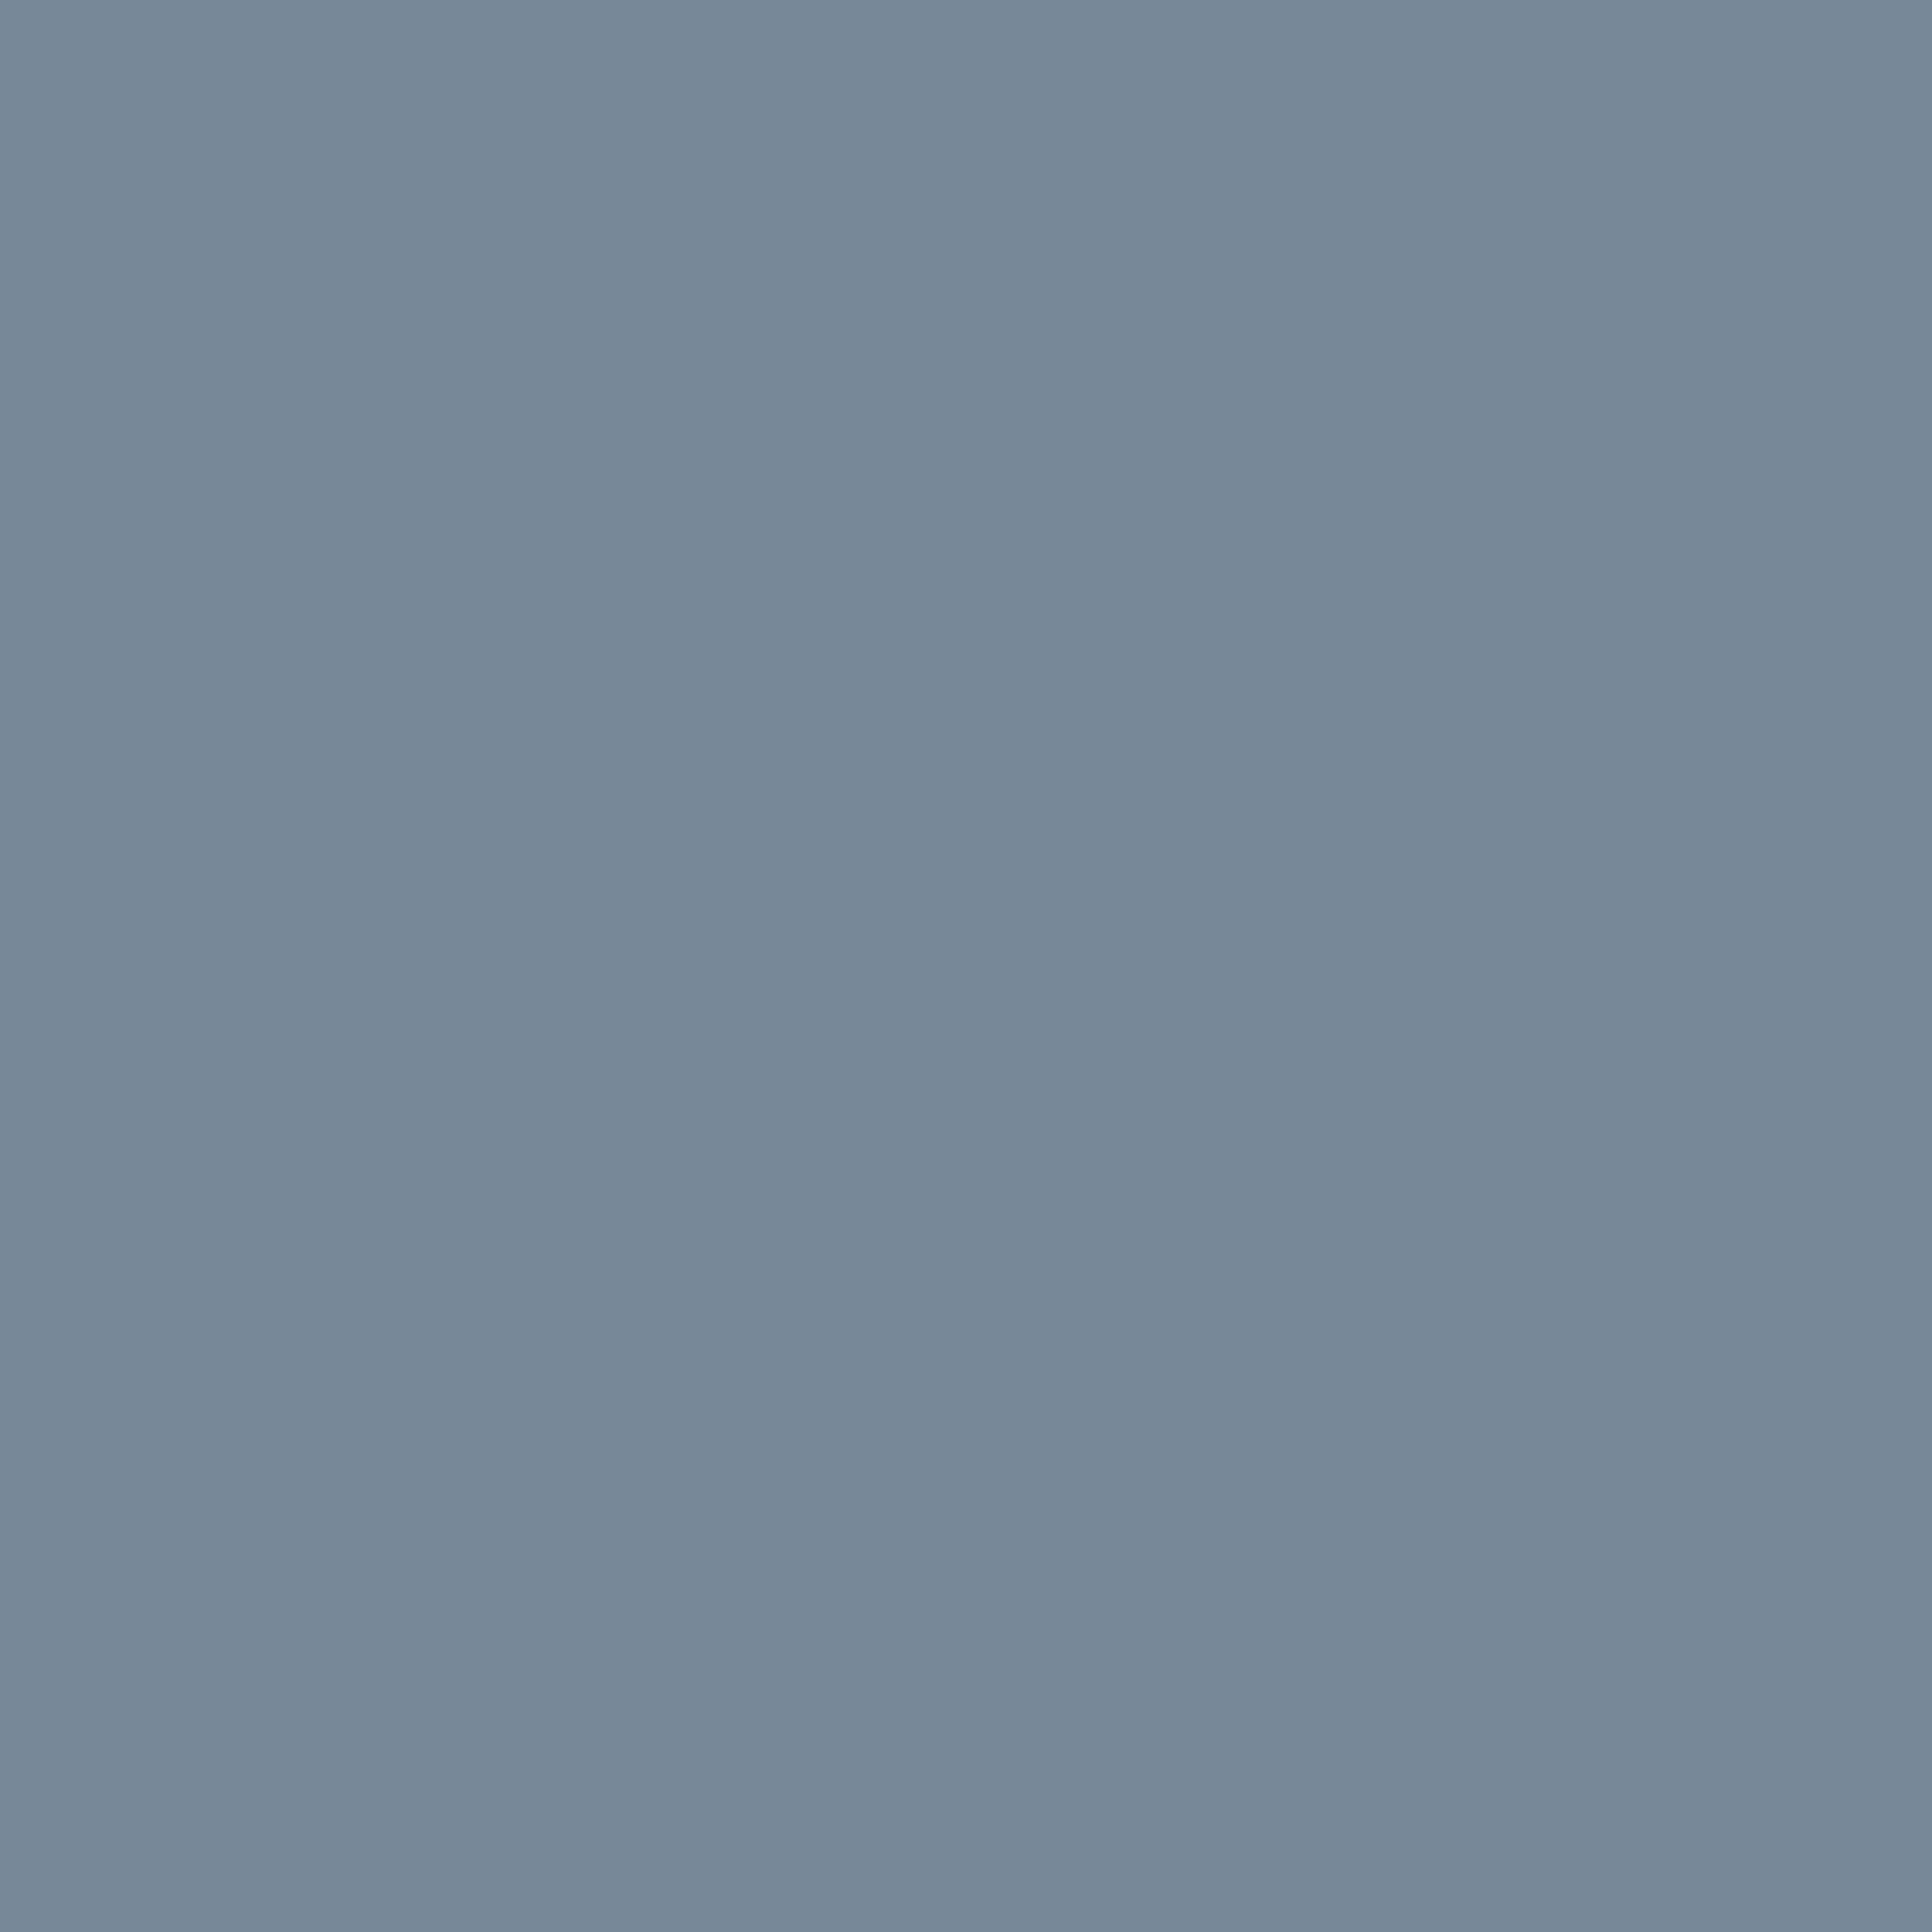 2048x2048 Light Slate Gray Solid Color Background